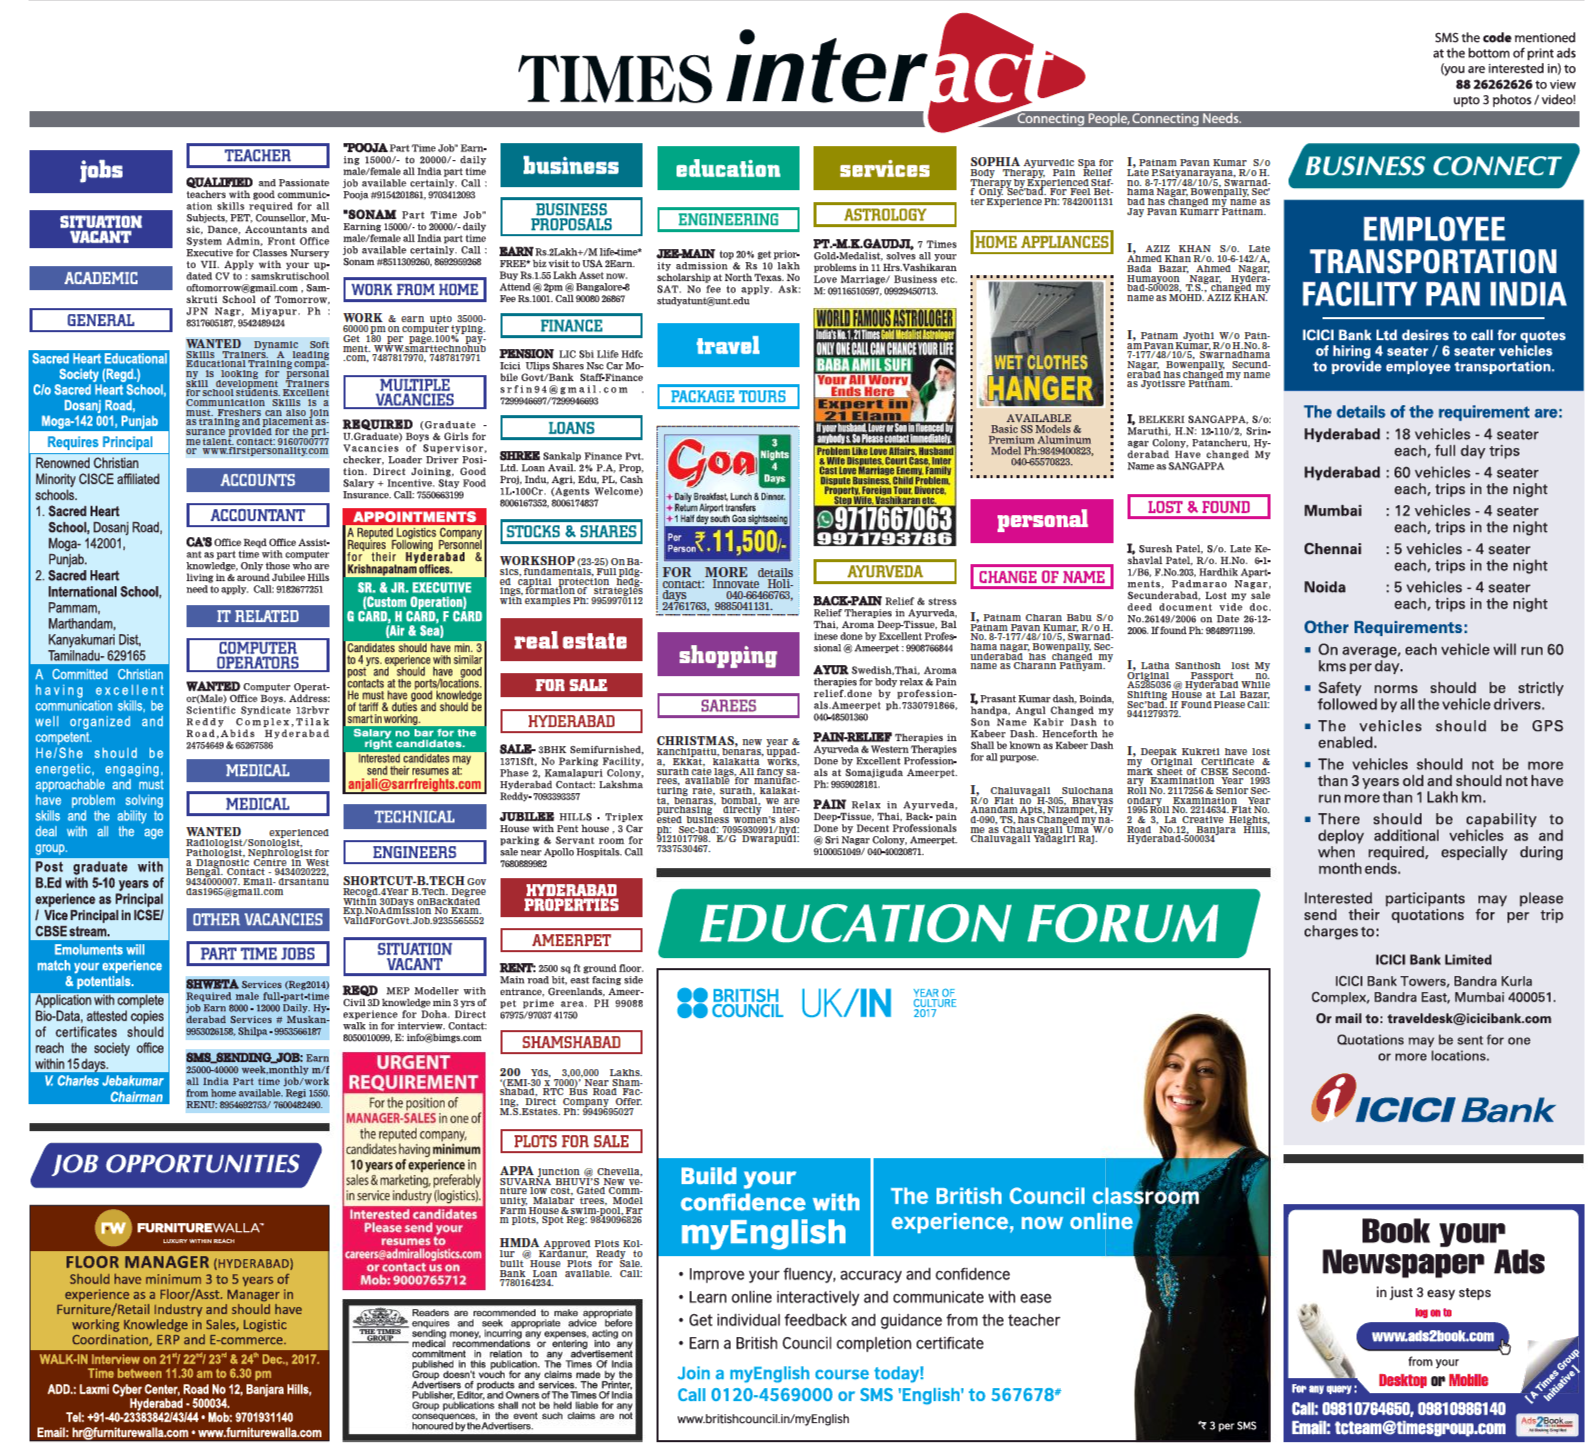 Times of India Classified Text Ads are charged based on number of Line or words used in the advertisement content with a limitation for using number of lines or words. This are plain text ads but Times of India offers enhancement options to make your ad highlighted using Background Color, Bold, Tickmark options.